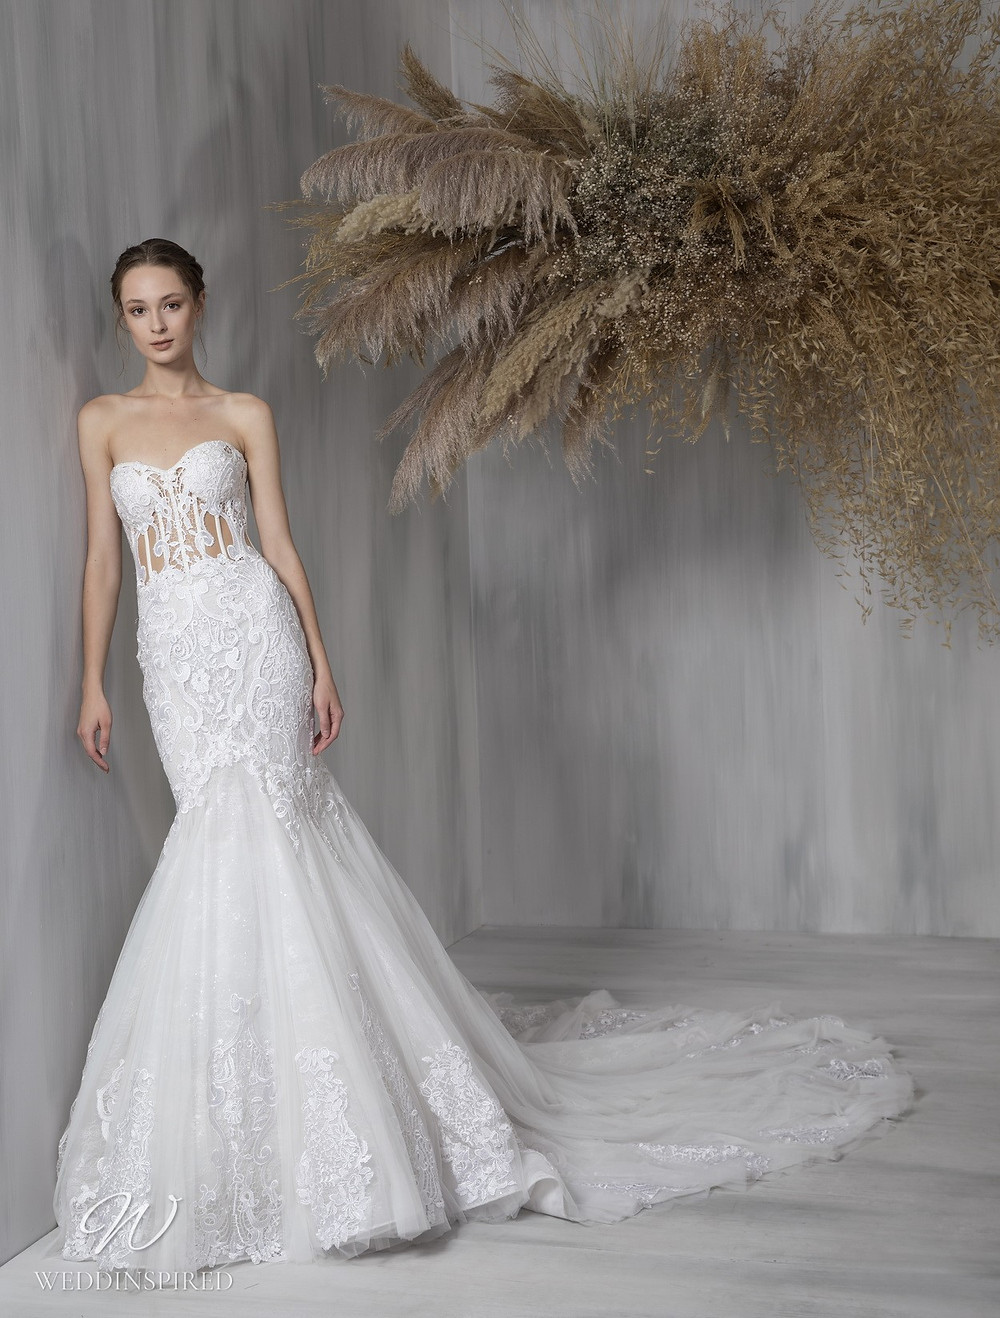 A Tony Ward 2021 strapless lace mermaid wedding dress with a train and a sweetheart neckline